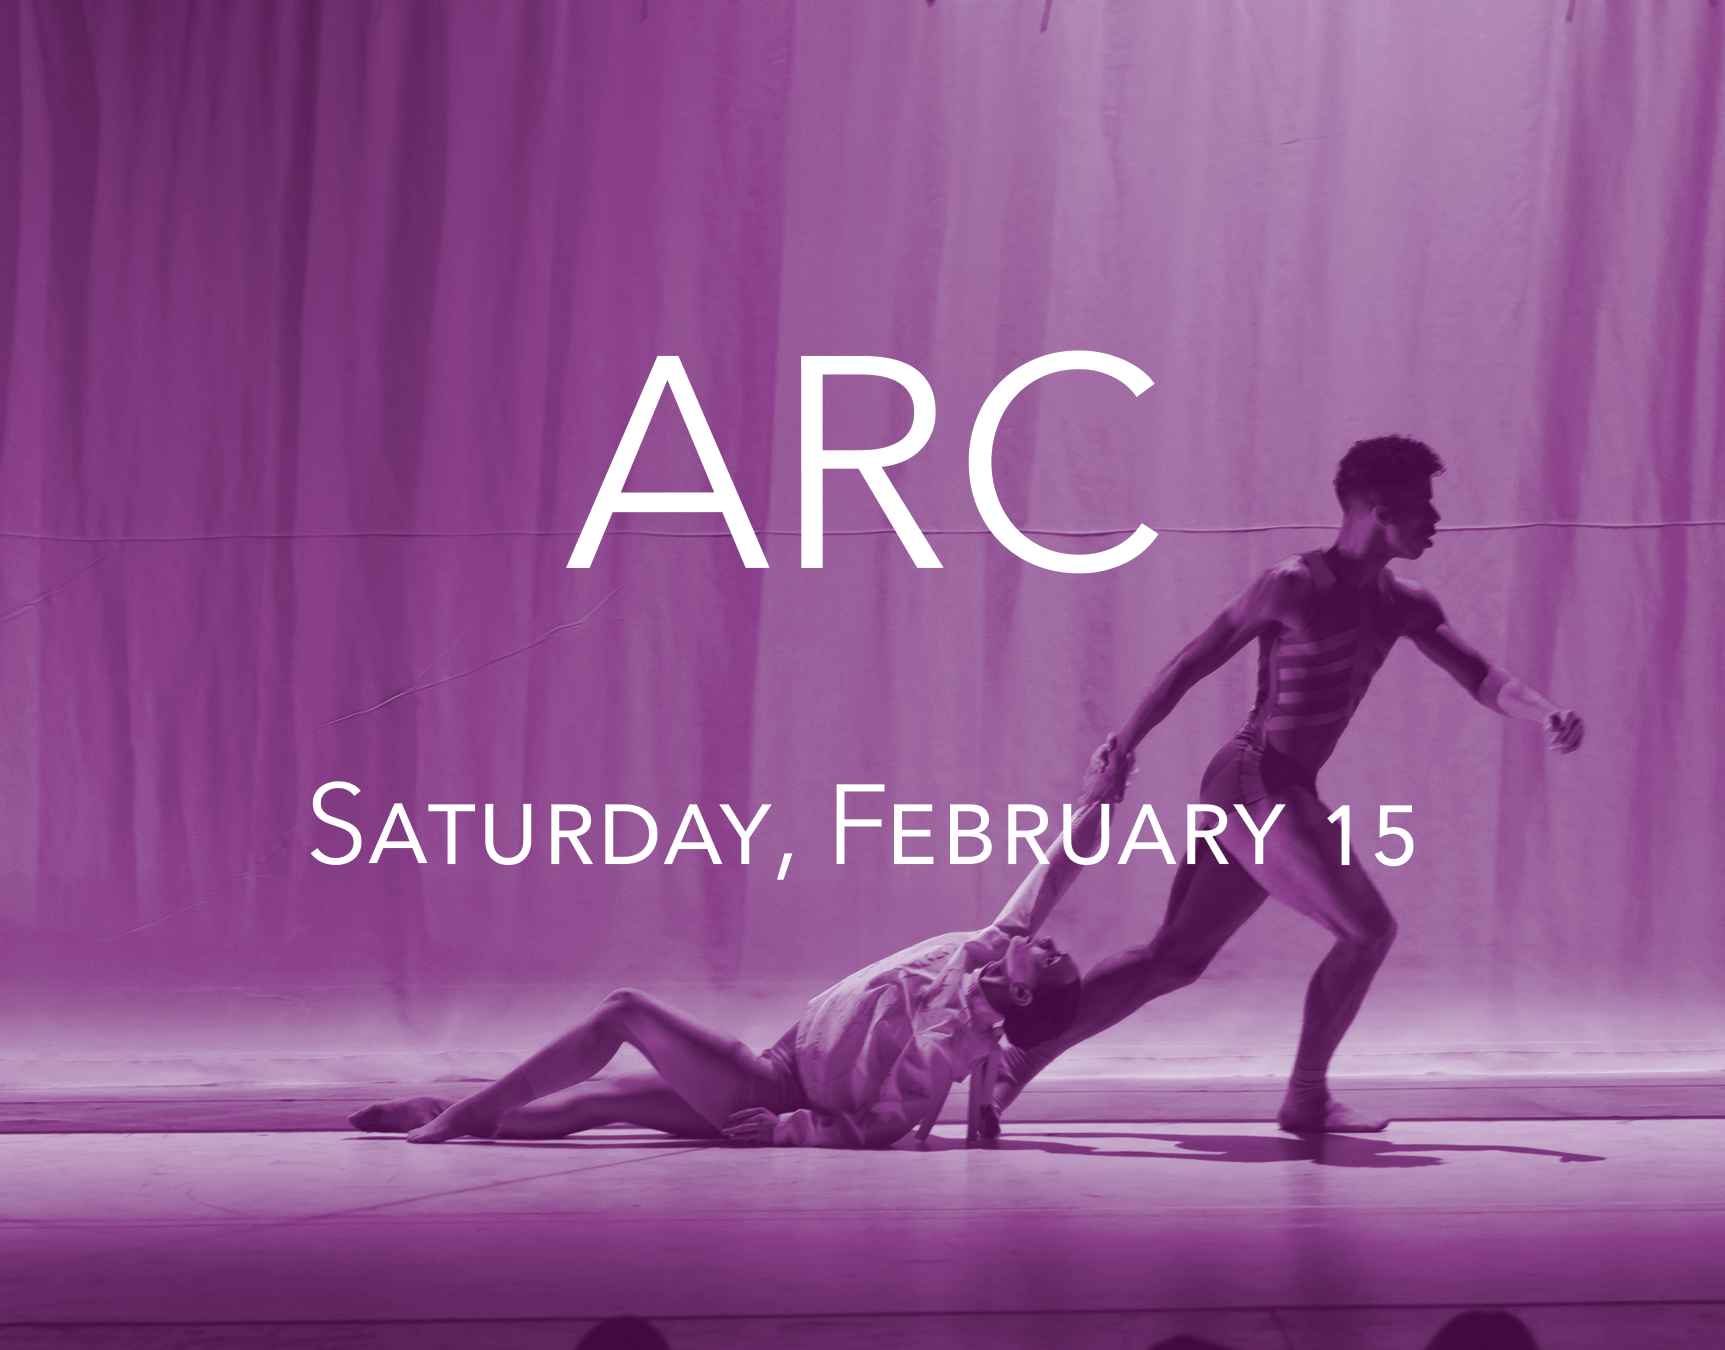 ARC - Saturday, February 15 | 800pmExplore power, beauty, and raw emotion with Eisenhower Dance Detroit in this triple bill program. Artistic Director, Stephanie Pizzo's, thought-provoking ARC created in collaboration with Detroit-based projection artist Adam Ludwig and lighting designer David Goodman-Edberg, returns by popular demand along with the premiere of a new work by internationally renowned choreographer, Nicolo Fonte. Pizzo's Surge, recently performed at Jacob's Pillow and set to an original composition by well-known techno artist, Aaron Siegel, rounds out this dynamic program.Berman Center for the Performing Arts6600 W Maple Rd, West Bloomfield Township, MI 48322